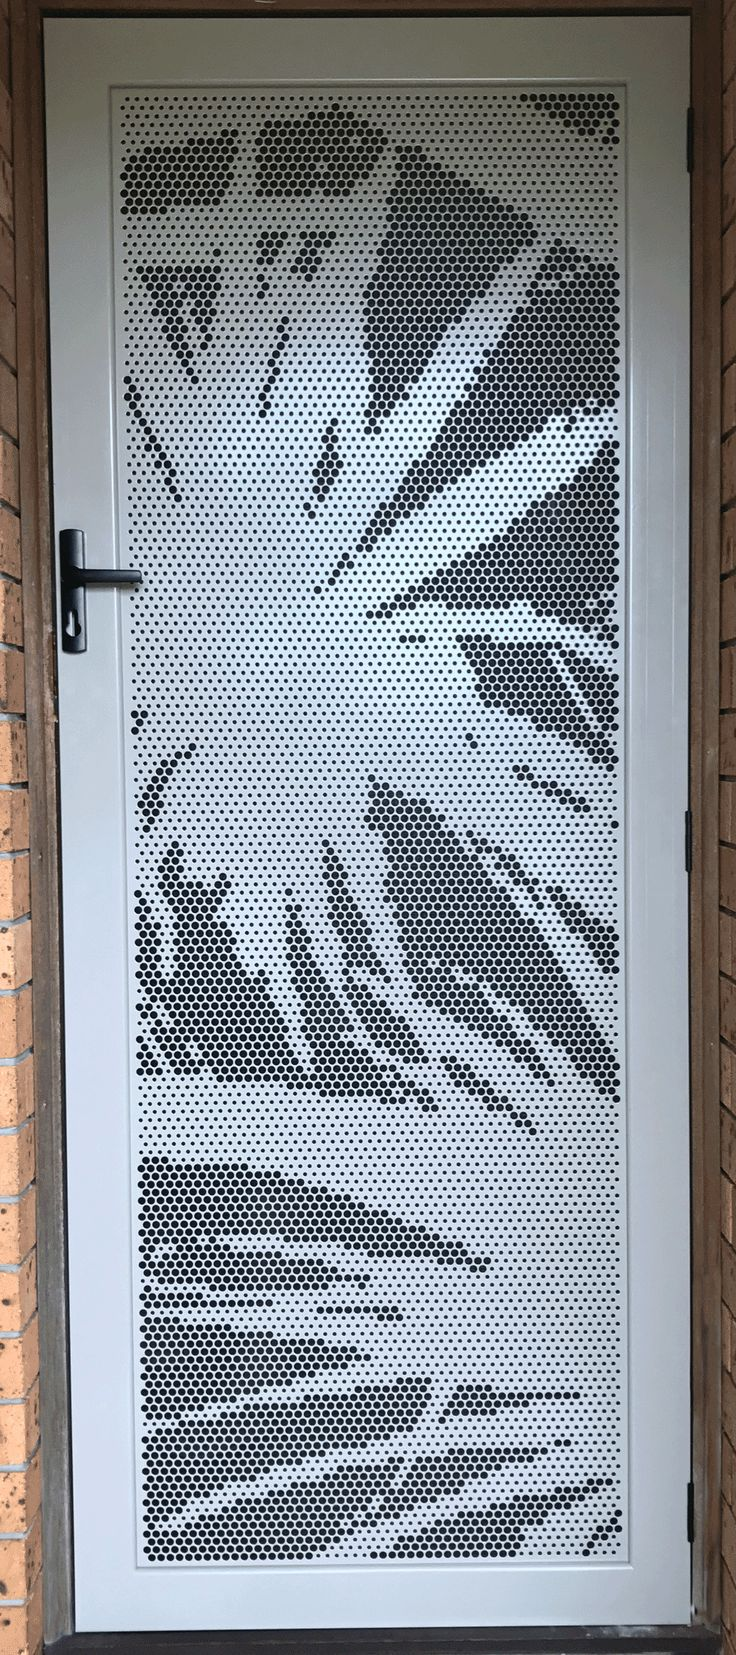 Grill pattern door grill design patterns manufacturer from new delhi - Decoview Hinged Decorative Security Screen Doors Security Screen Doors You Can Have The Latest